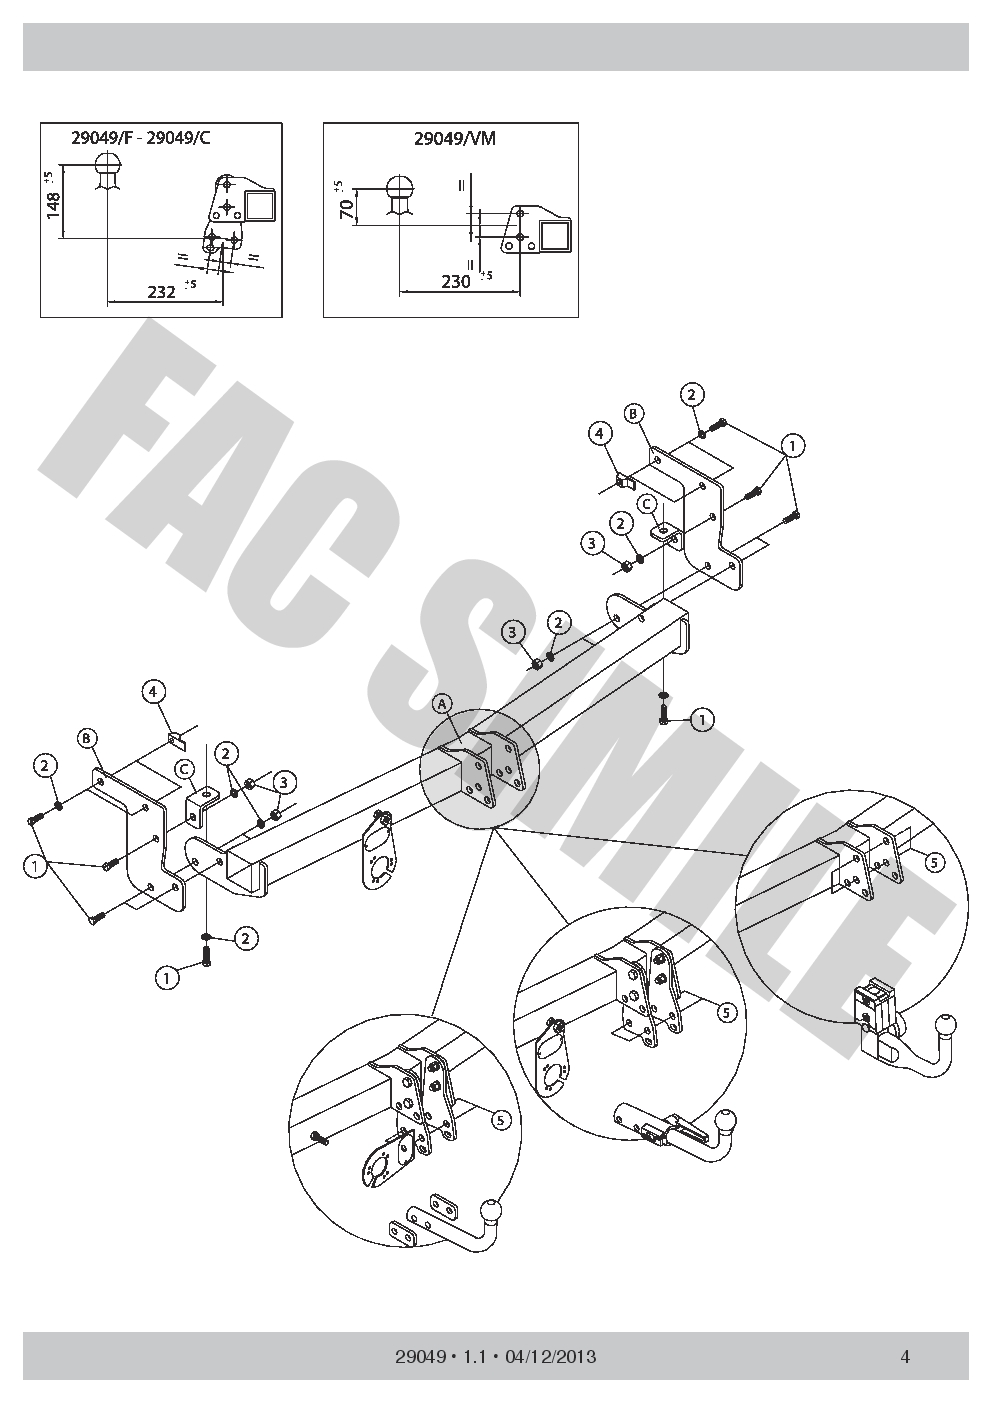 Detachable-Towball-Towbar-7pin-Wiring-for-Peugeot-2008-